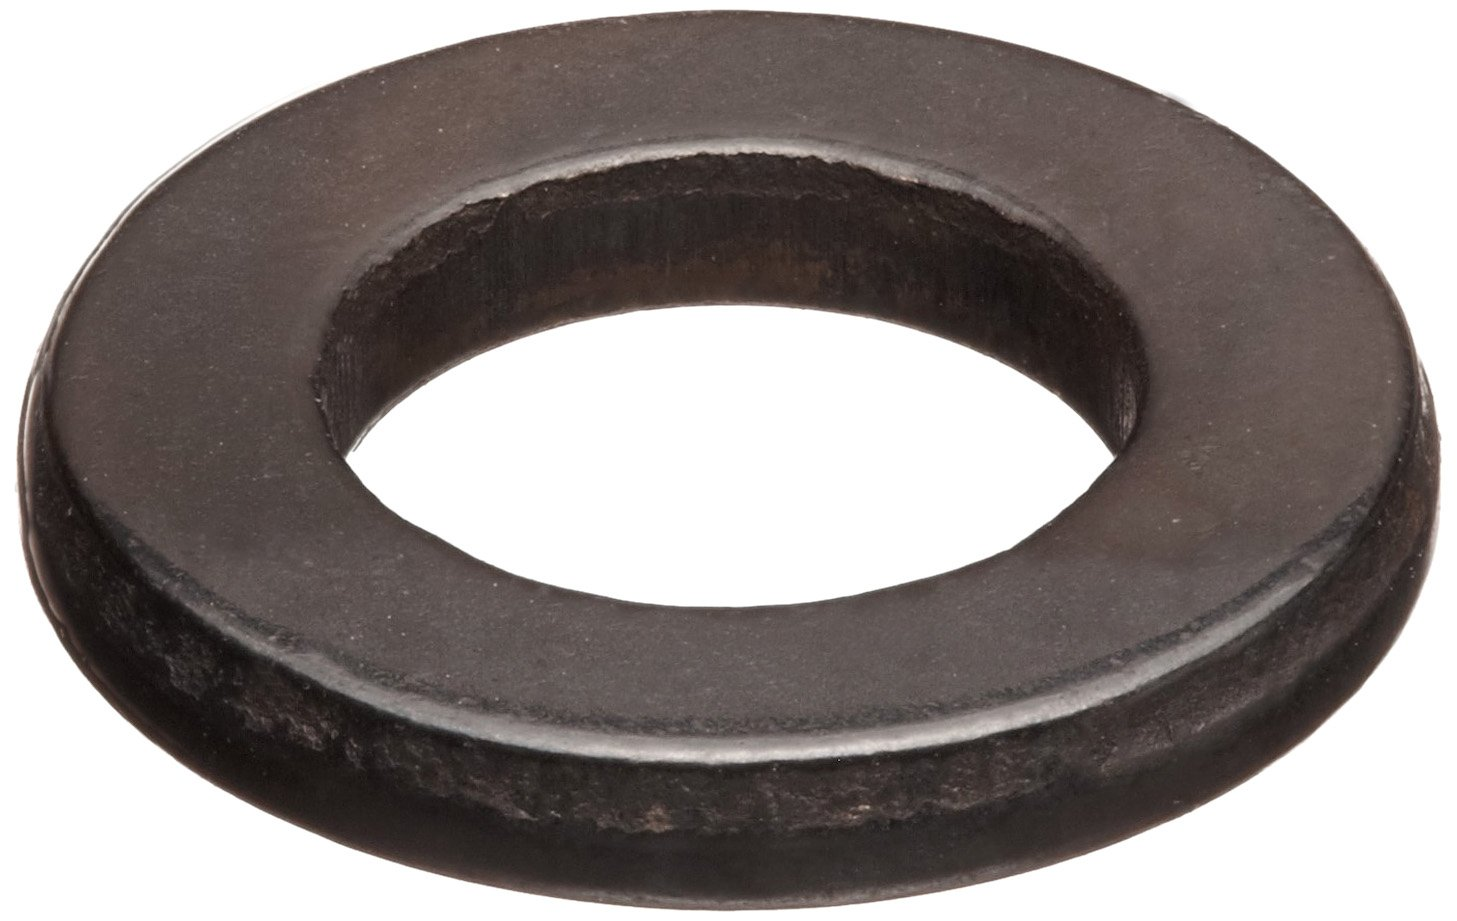 0.094 Nominal Thickness Steel Type A Flat Washer Meets ATM F2329 Fender Corrosion Resistant Made in US Black Oxide Finish 0.406 ID 3//8 Hole Size 0.750 OD Pack of 50